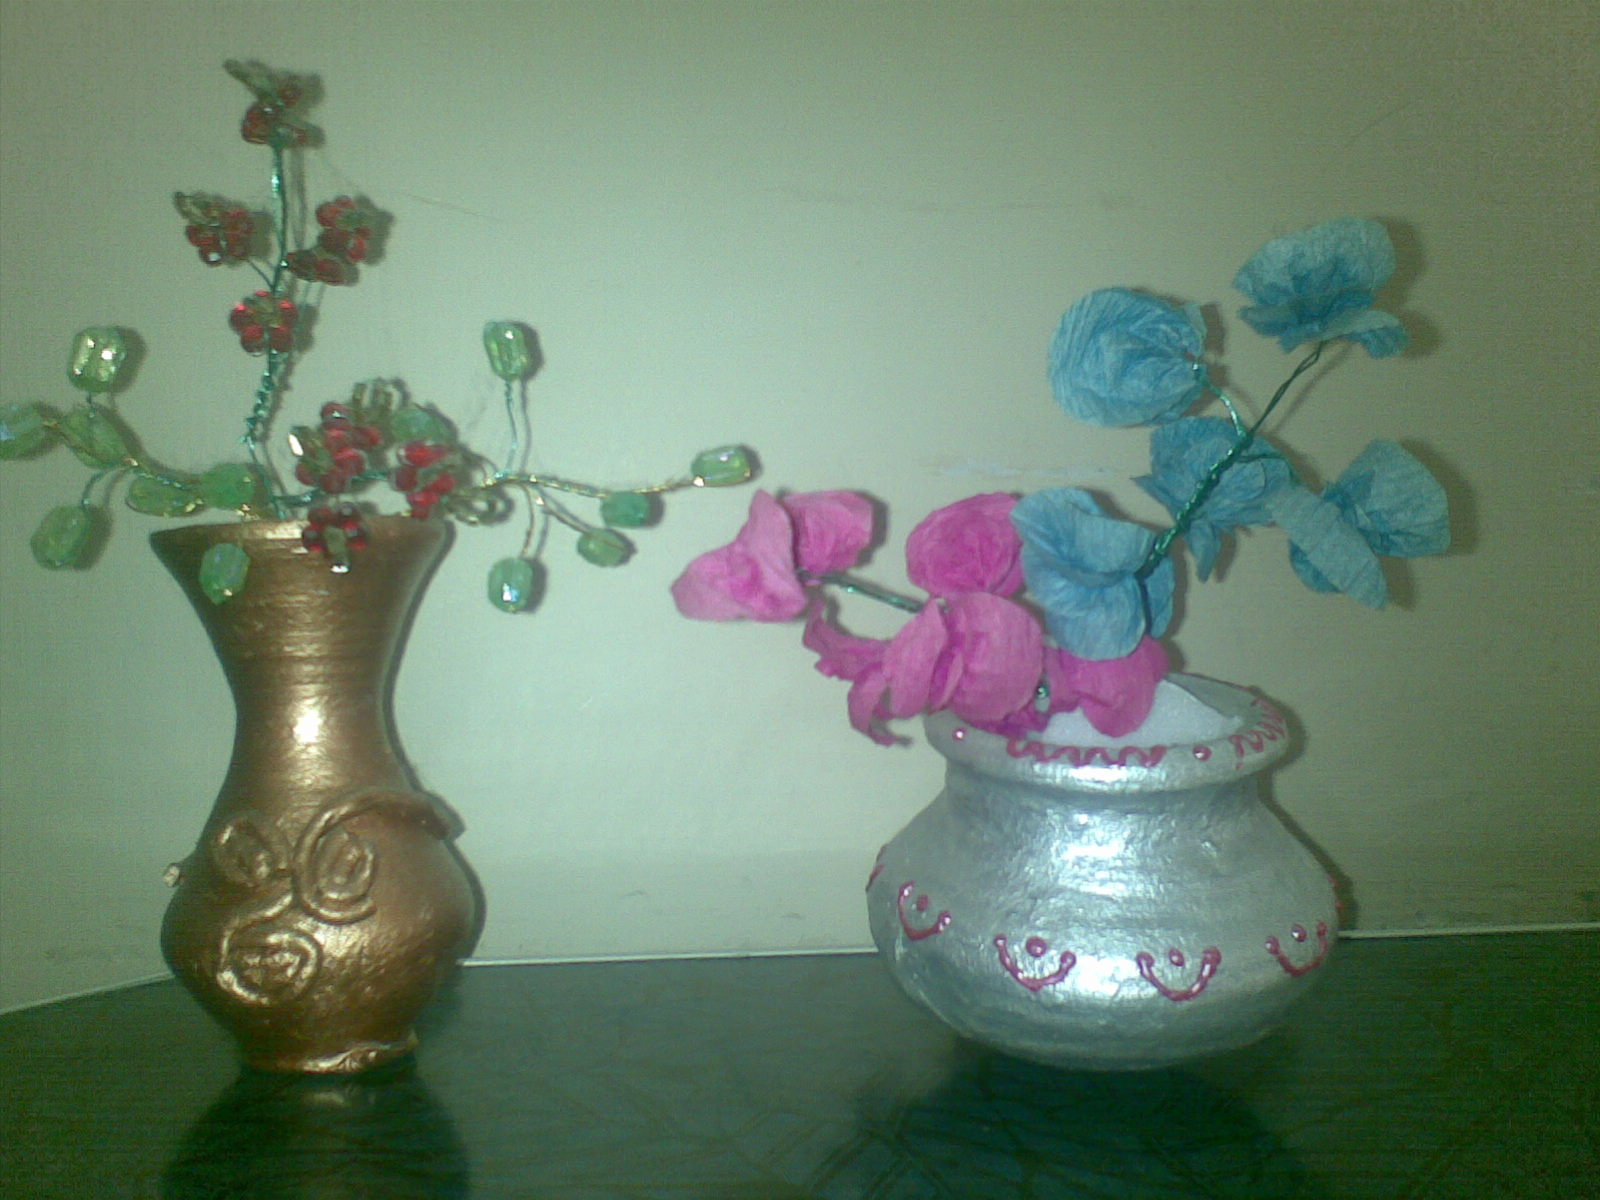 Hobby Workshops In Bangalore Making Crape Paper Flowers And Bead